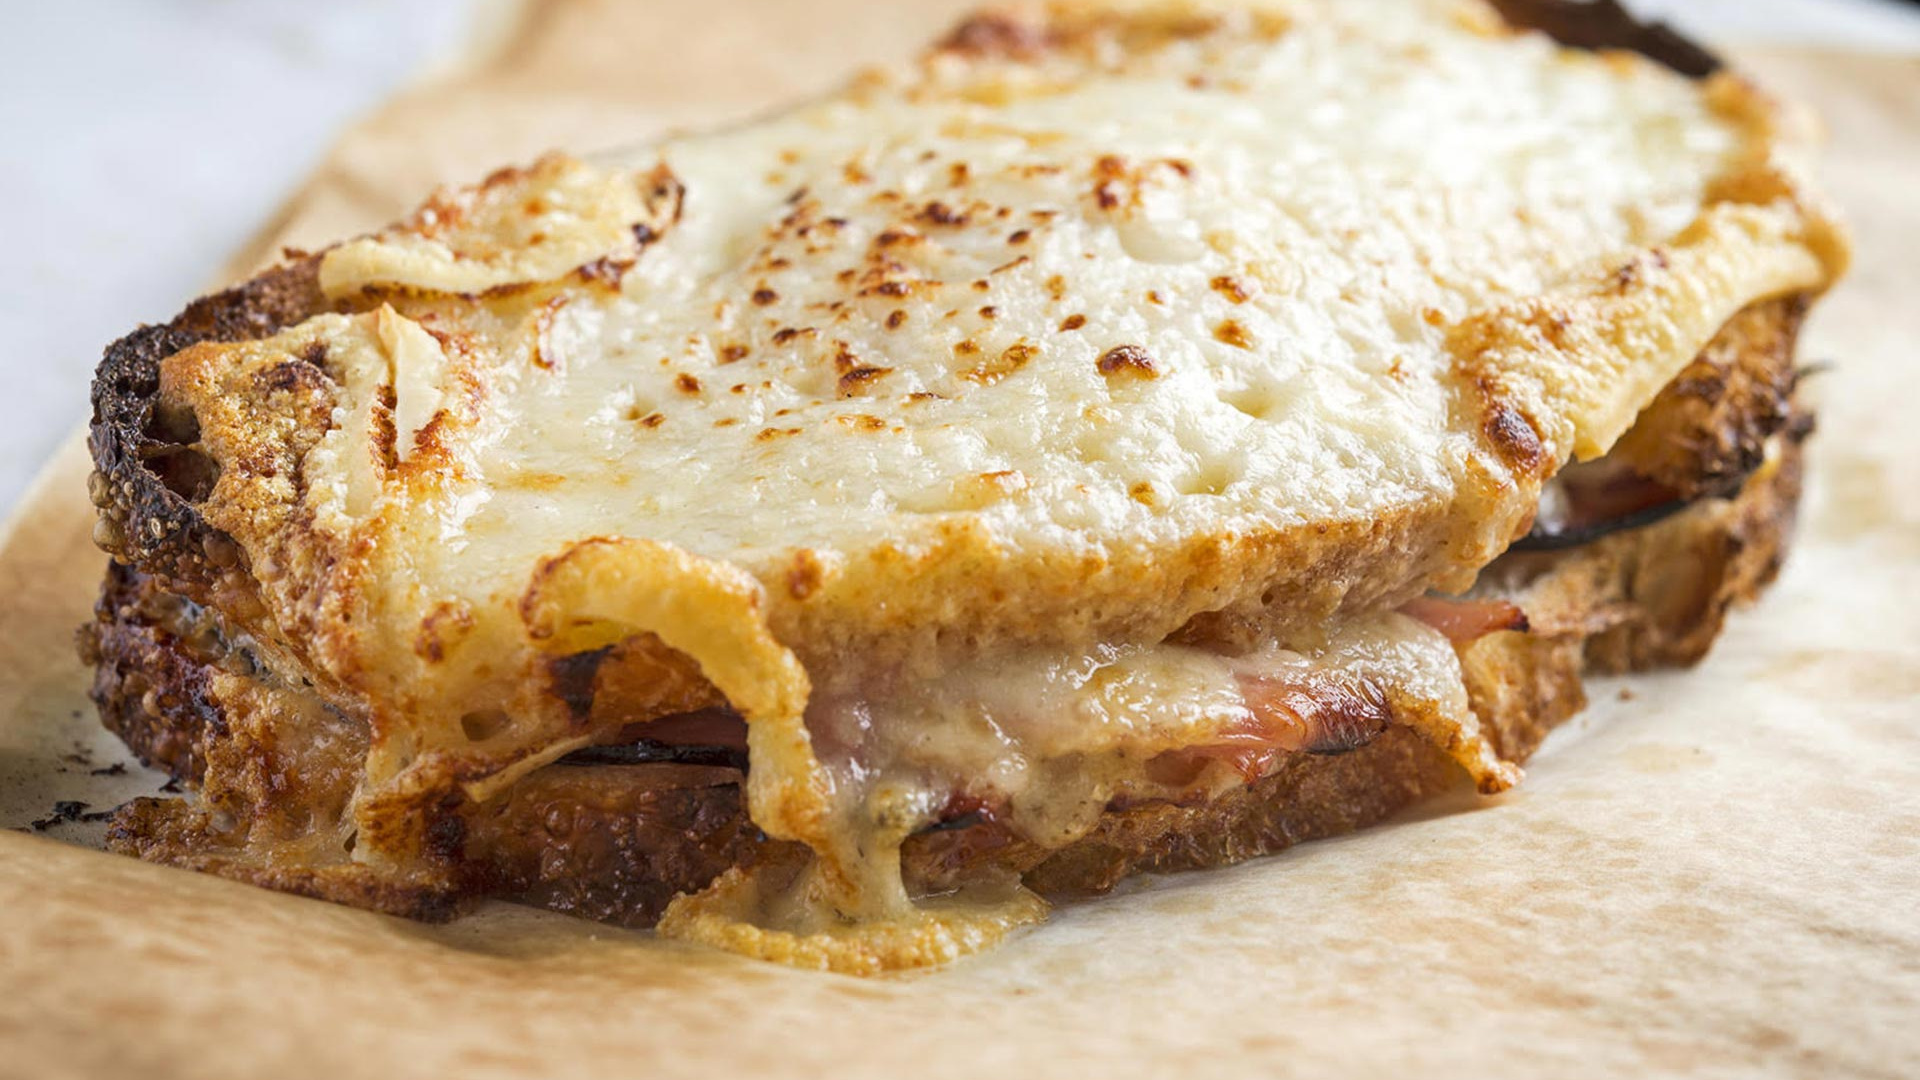 Make Dominique Ansel's Croque Monsieur; photograph by Daniel Krieger